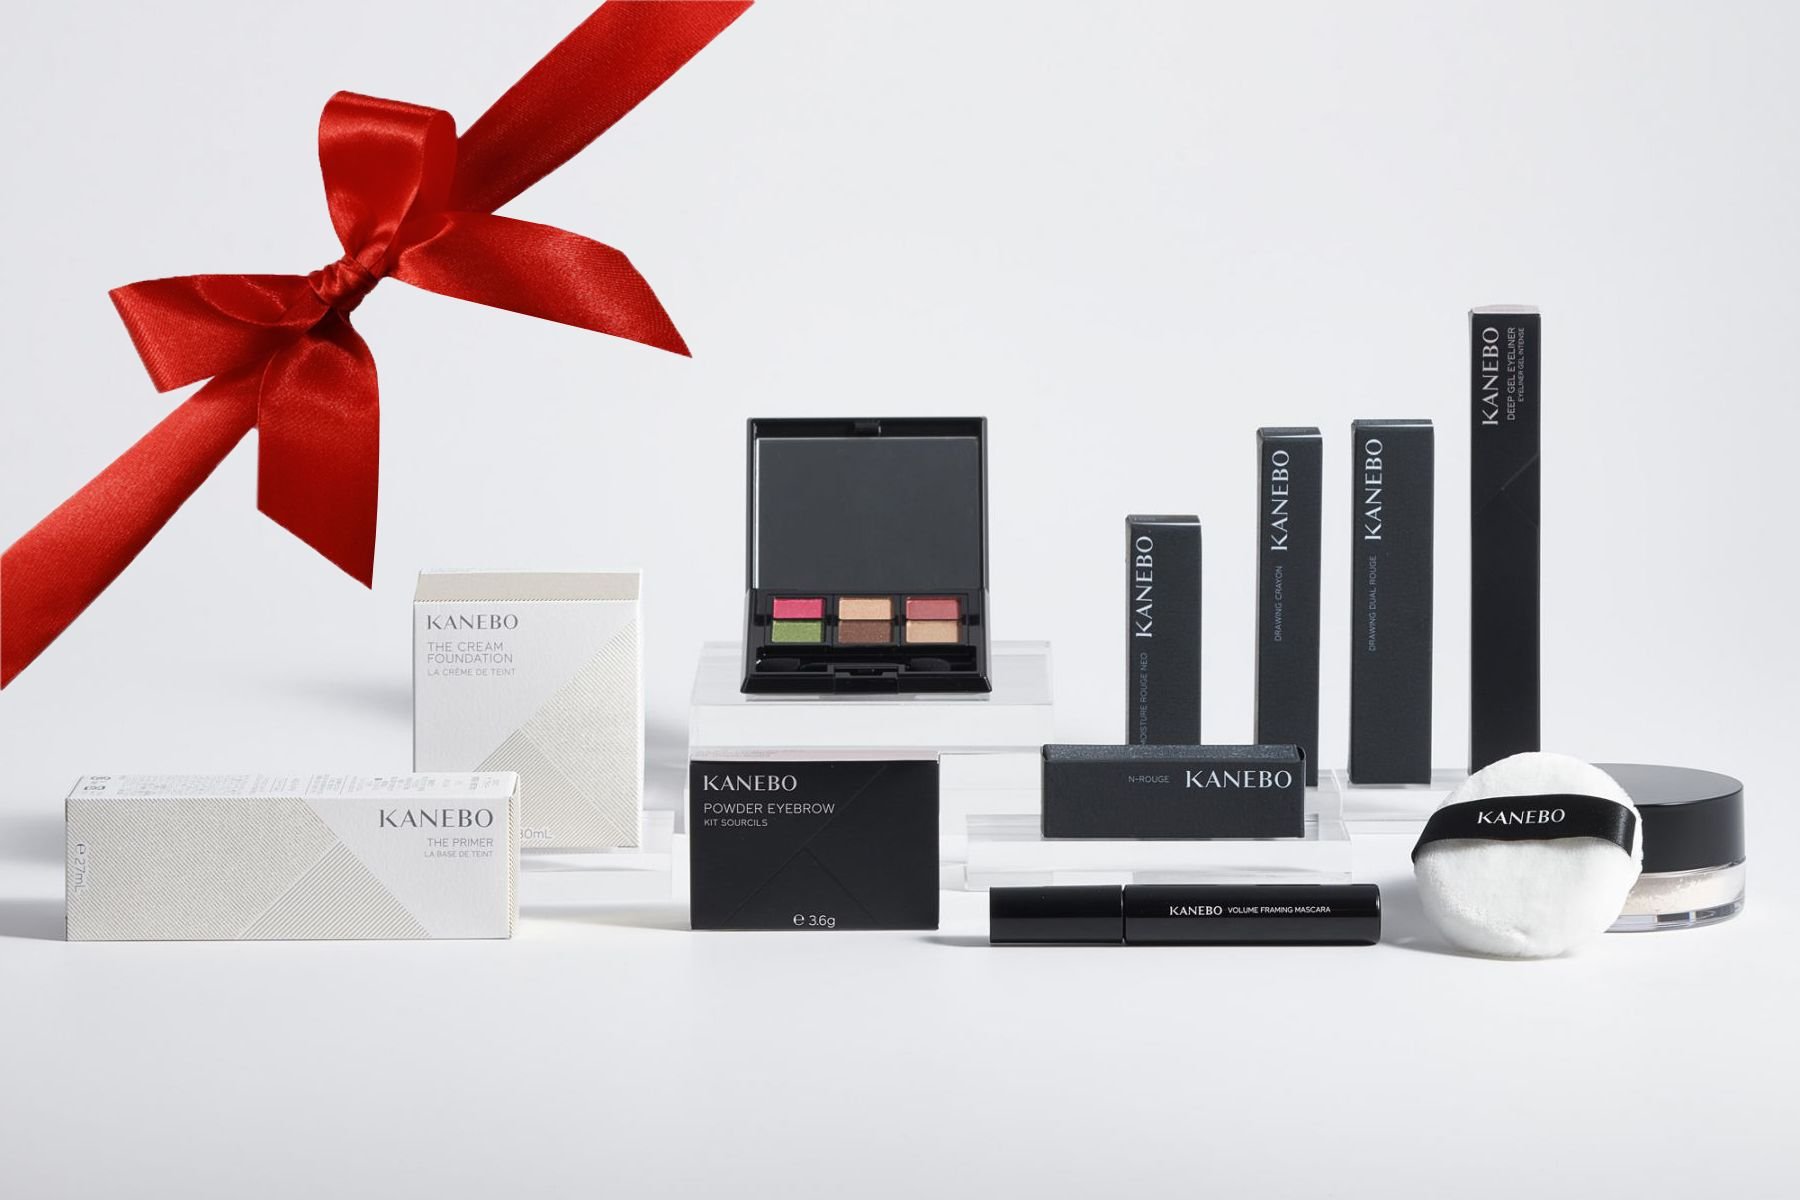 Christmas Gift Guide 2020: The Best Luxury Beauty and Skincare For Your Loved Ones